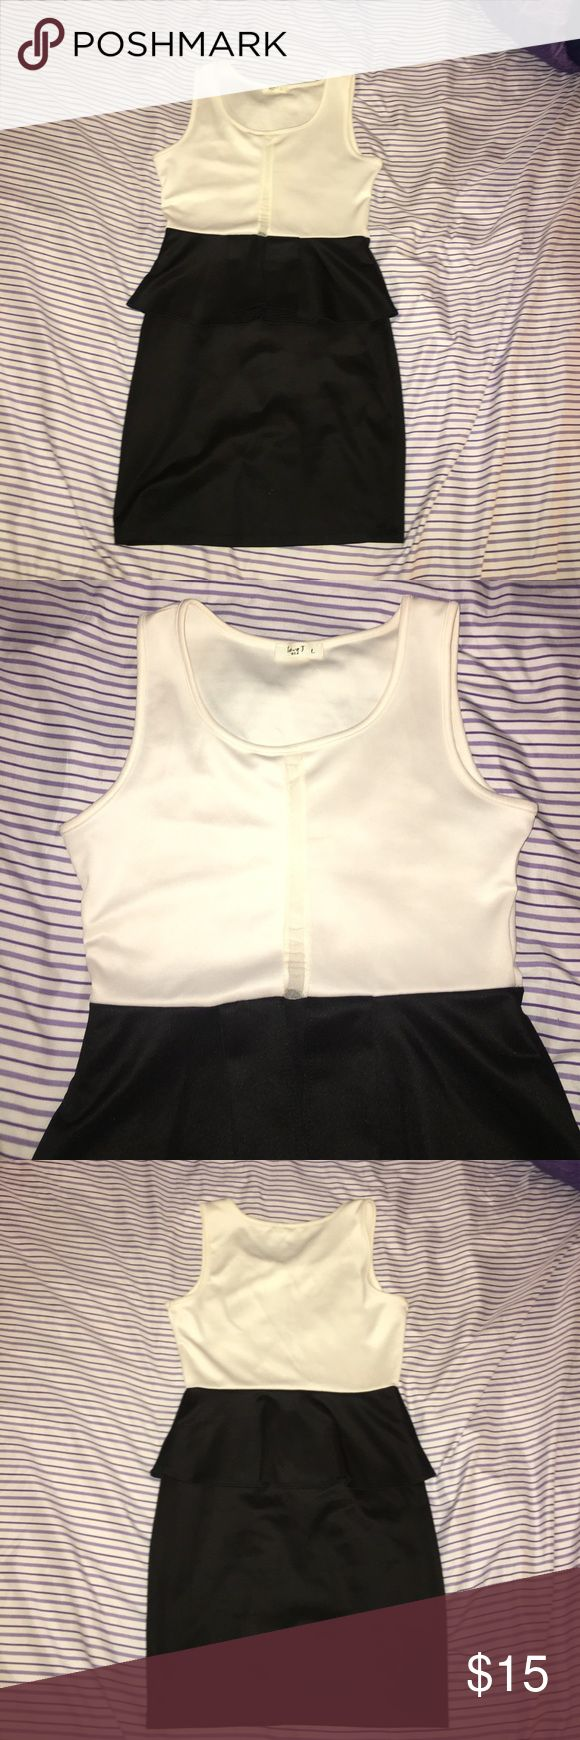 Black and White Peplum Dress This beautiful yet simple dress can be worn anywhere! Peplum dresses never go out of style and can give you that perfect hourglass silhouette shape you have always wanted. Dresses Midi